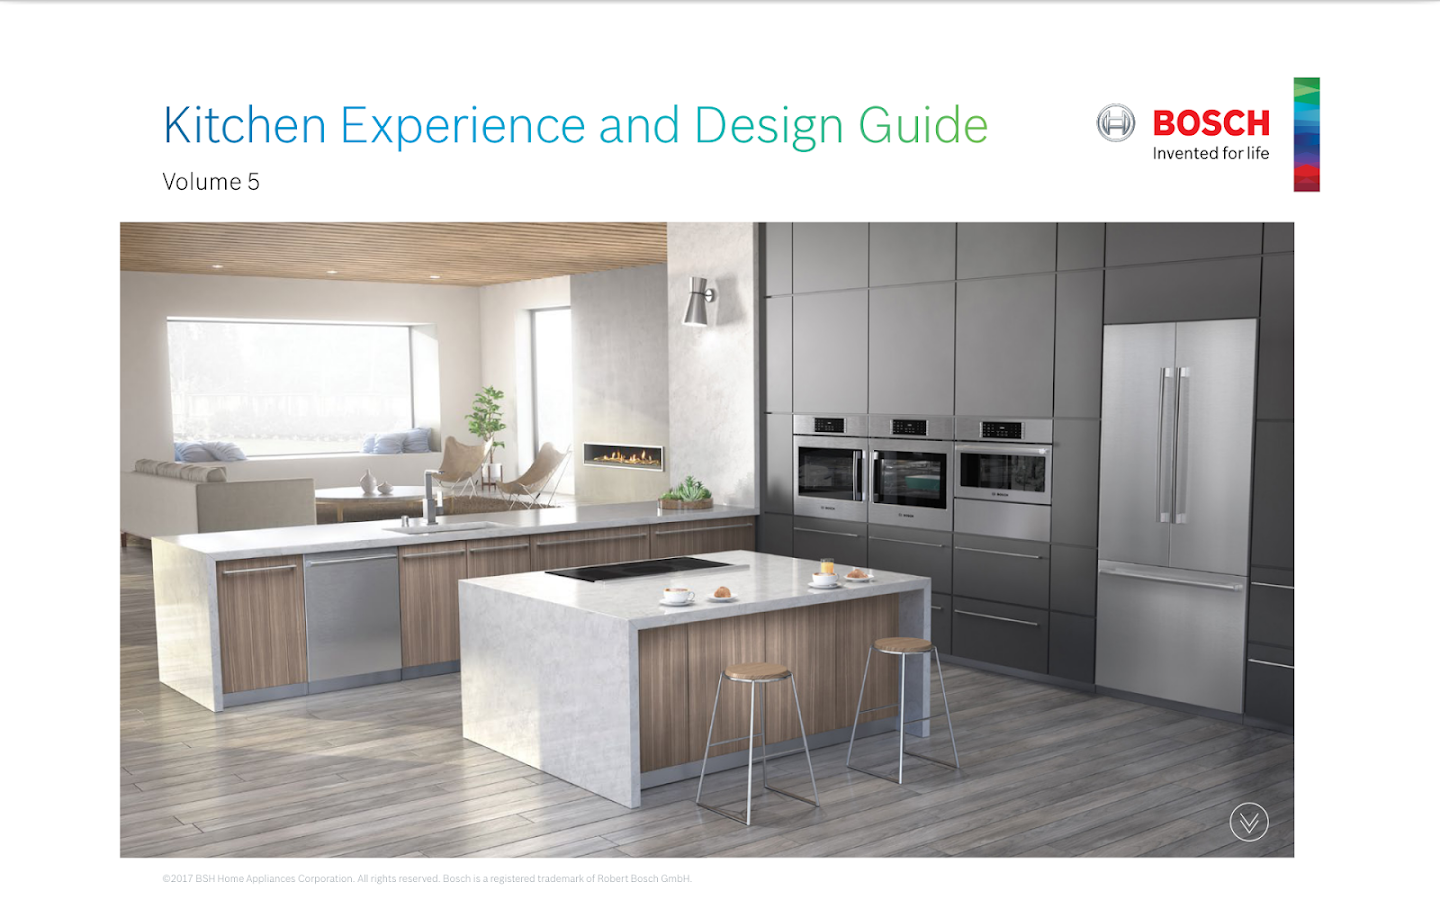 Bosch kitchen design guide android apps on google play for Kitchen design app